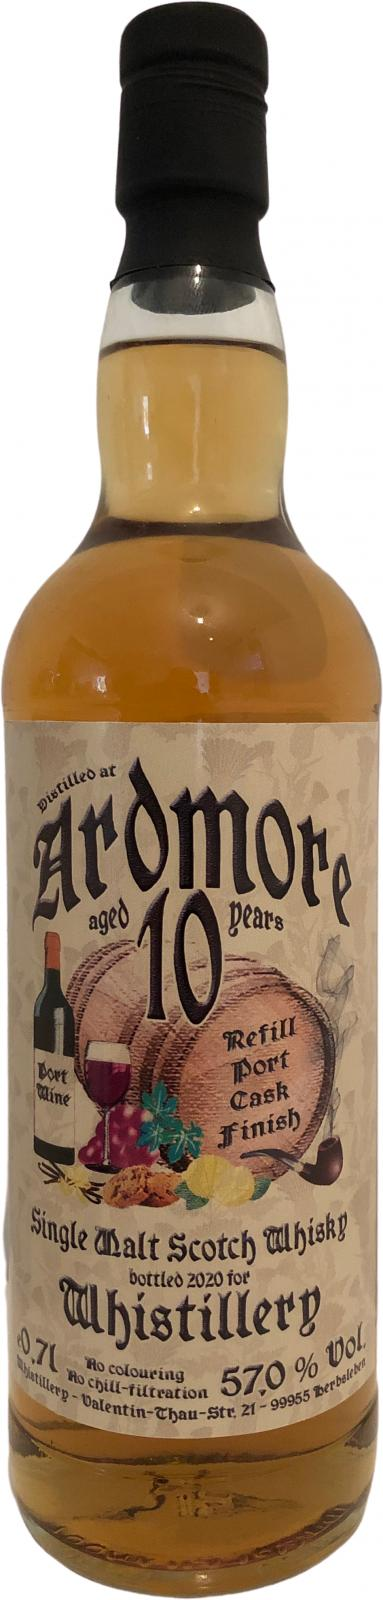 Ardmore 10-year-old